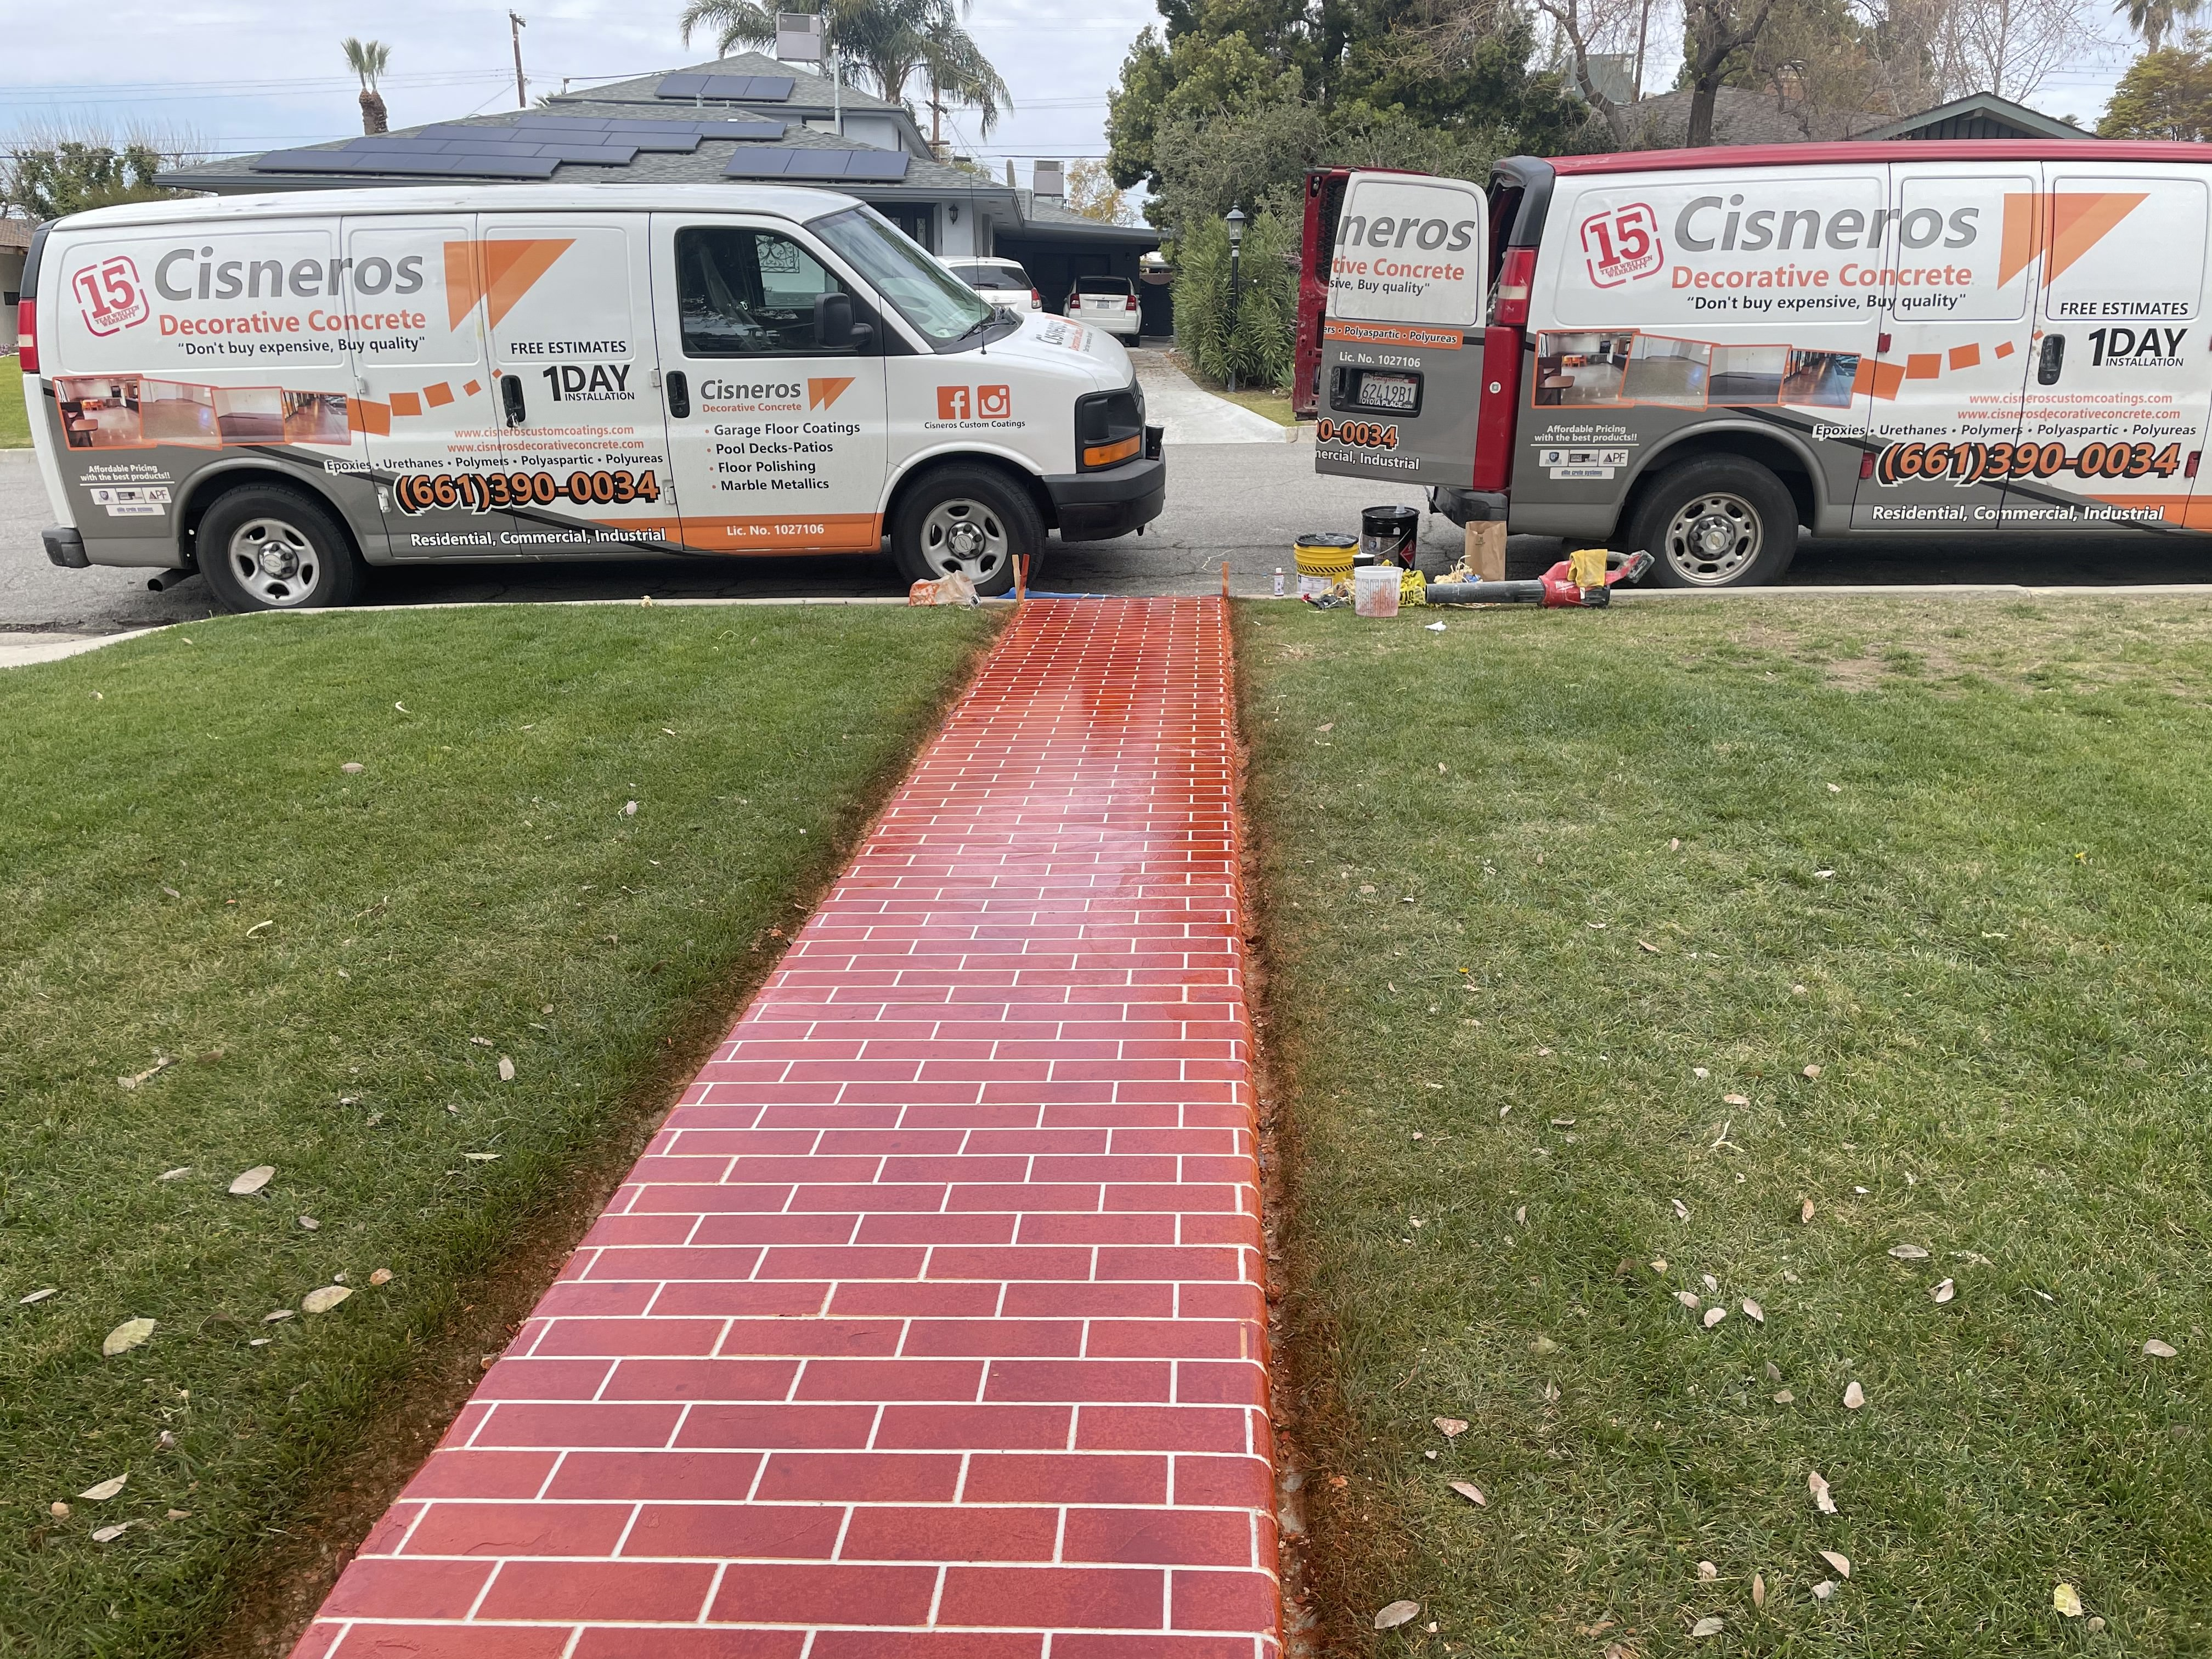 Residential Home Pathway Concrete Coating Bakersfield